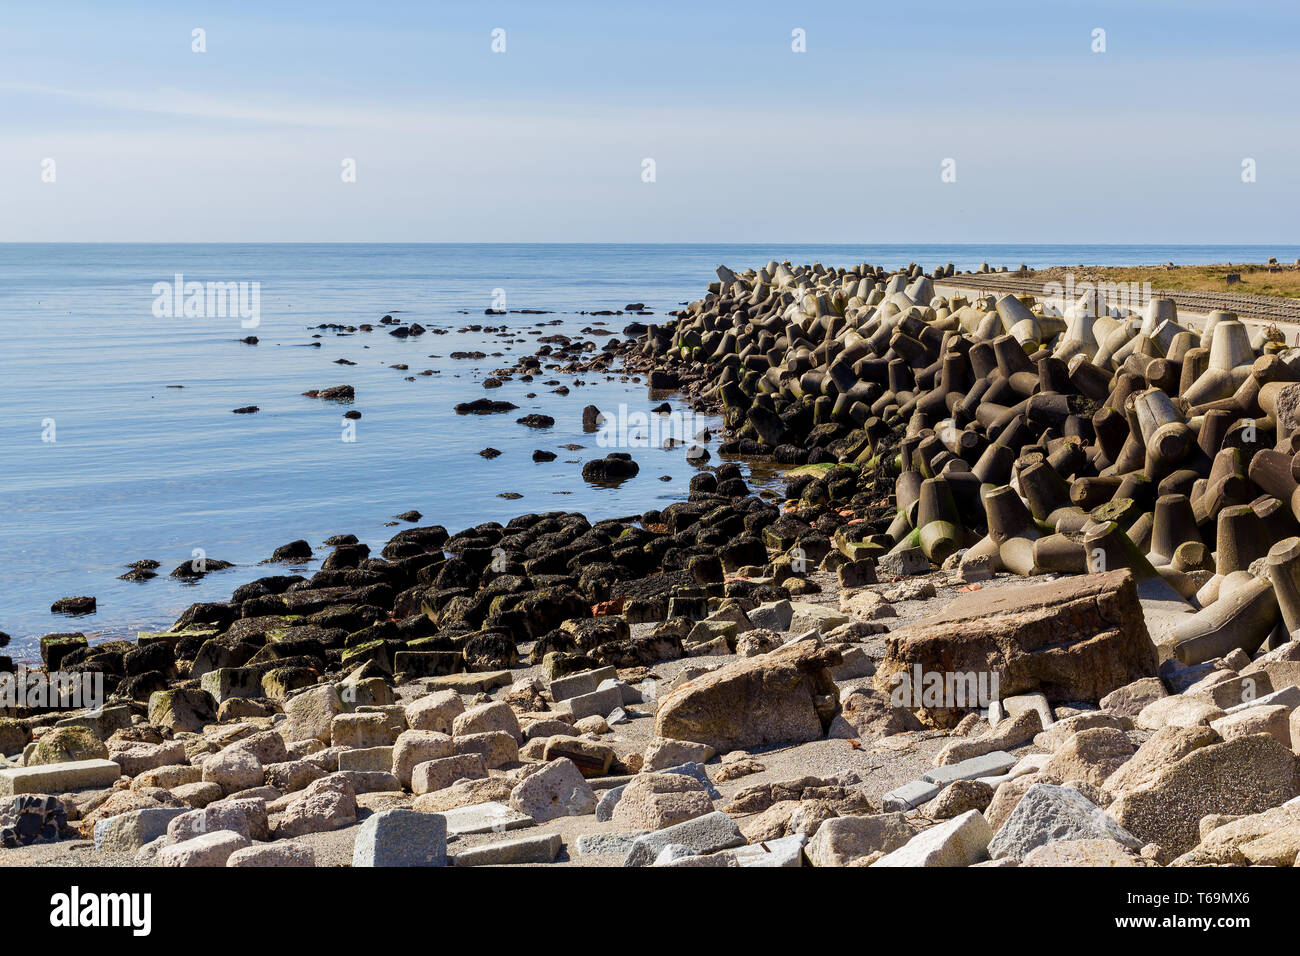 Concrete Wavebreaker High Resolution Stock Photography And Images Alamy